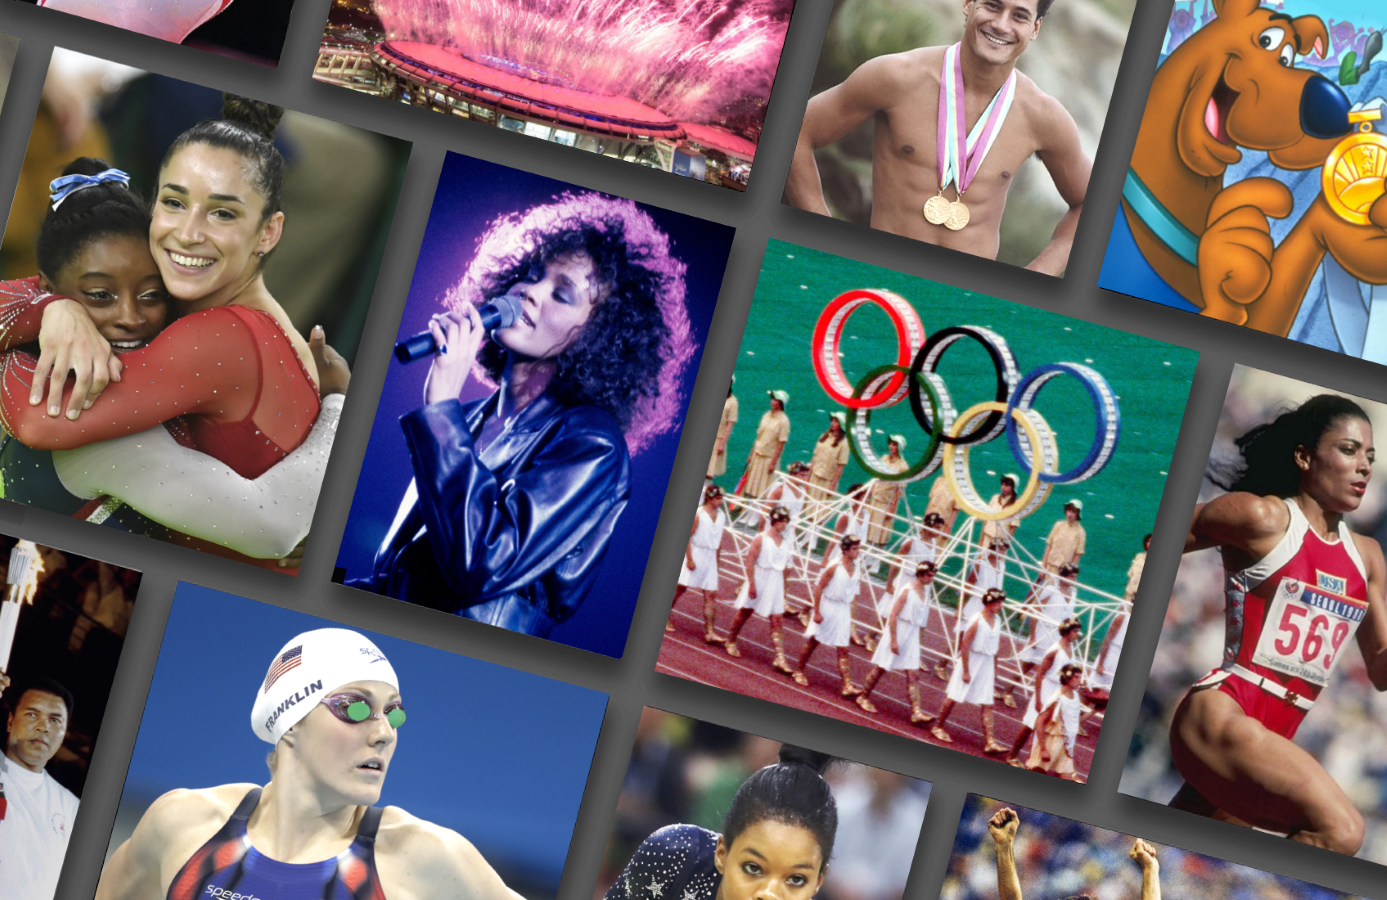 COVID may have derailed this Summer's games, but there's plenty of Olympics-themed content available online to fill the next two weeks and beyond.